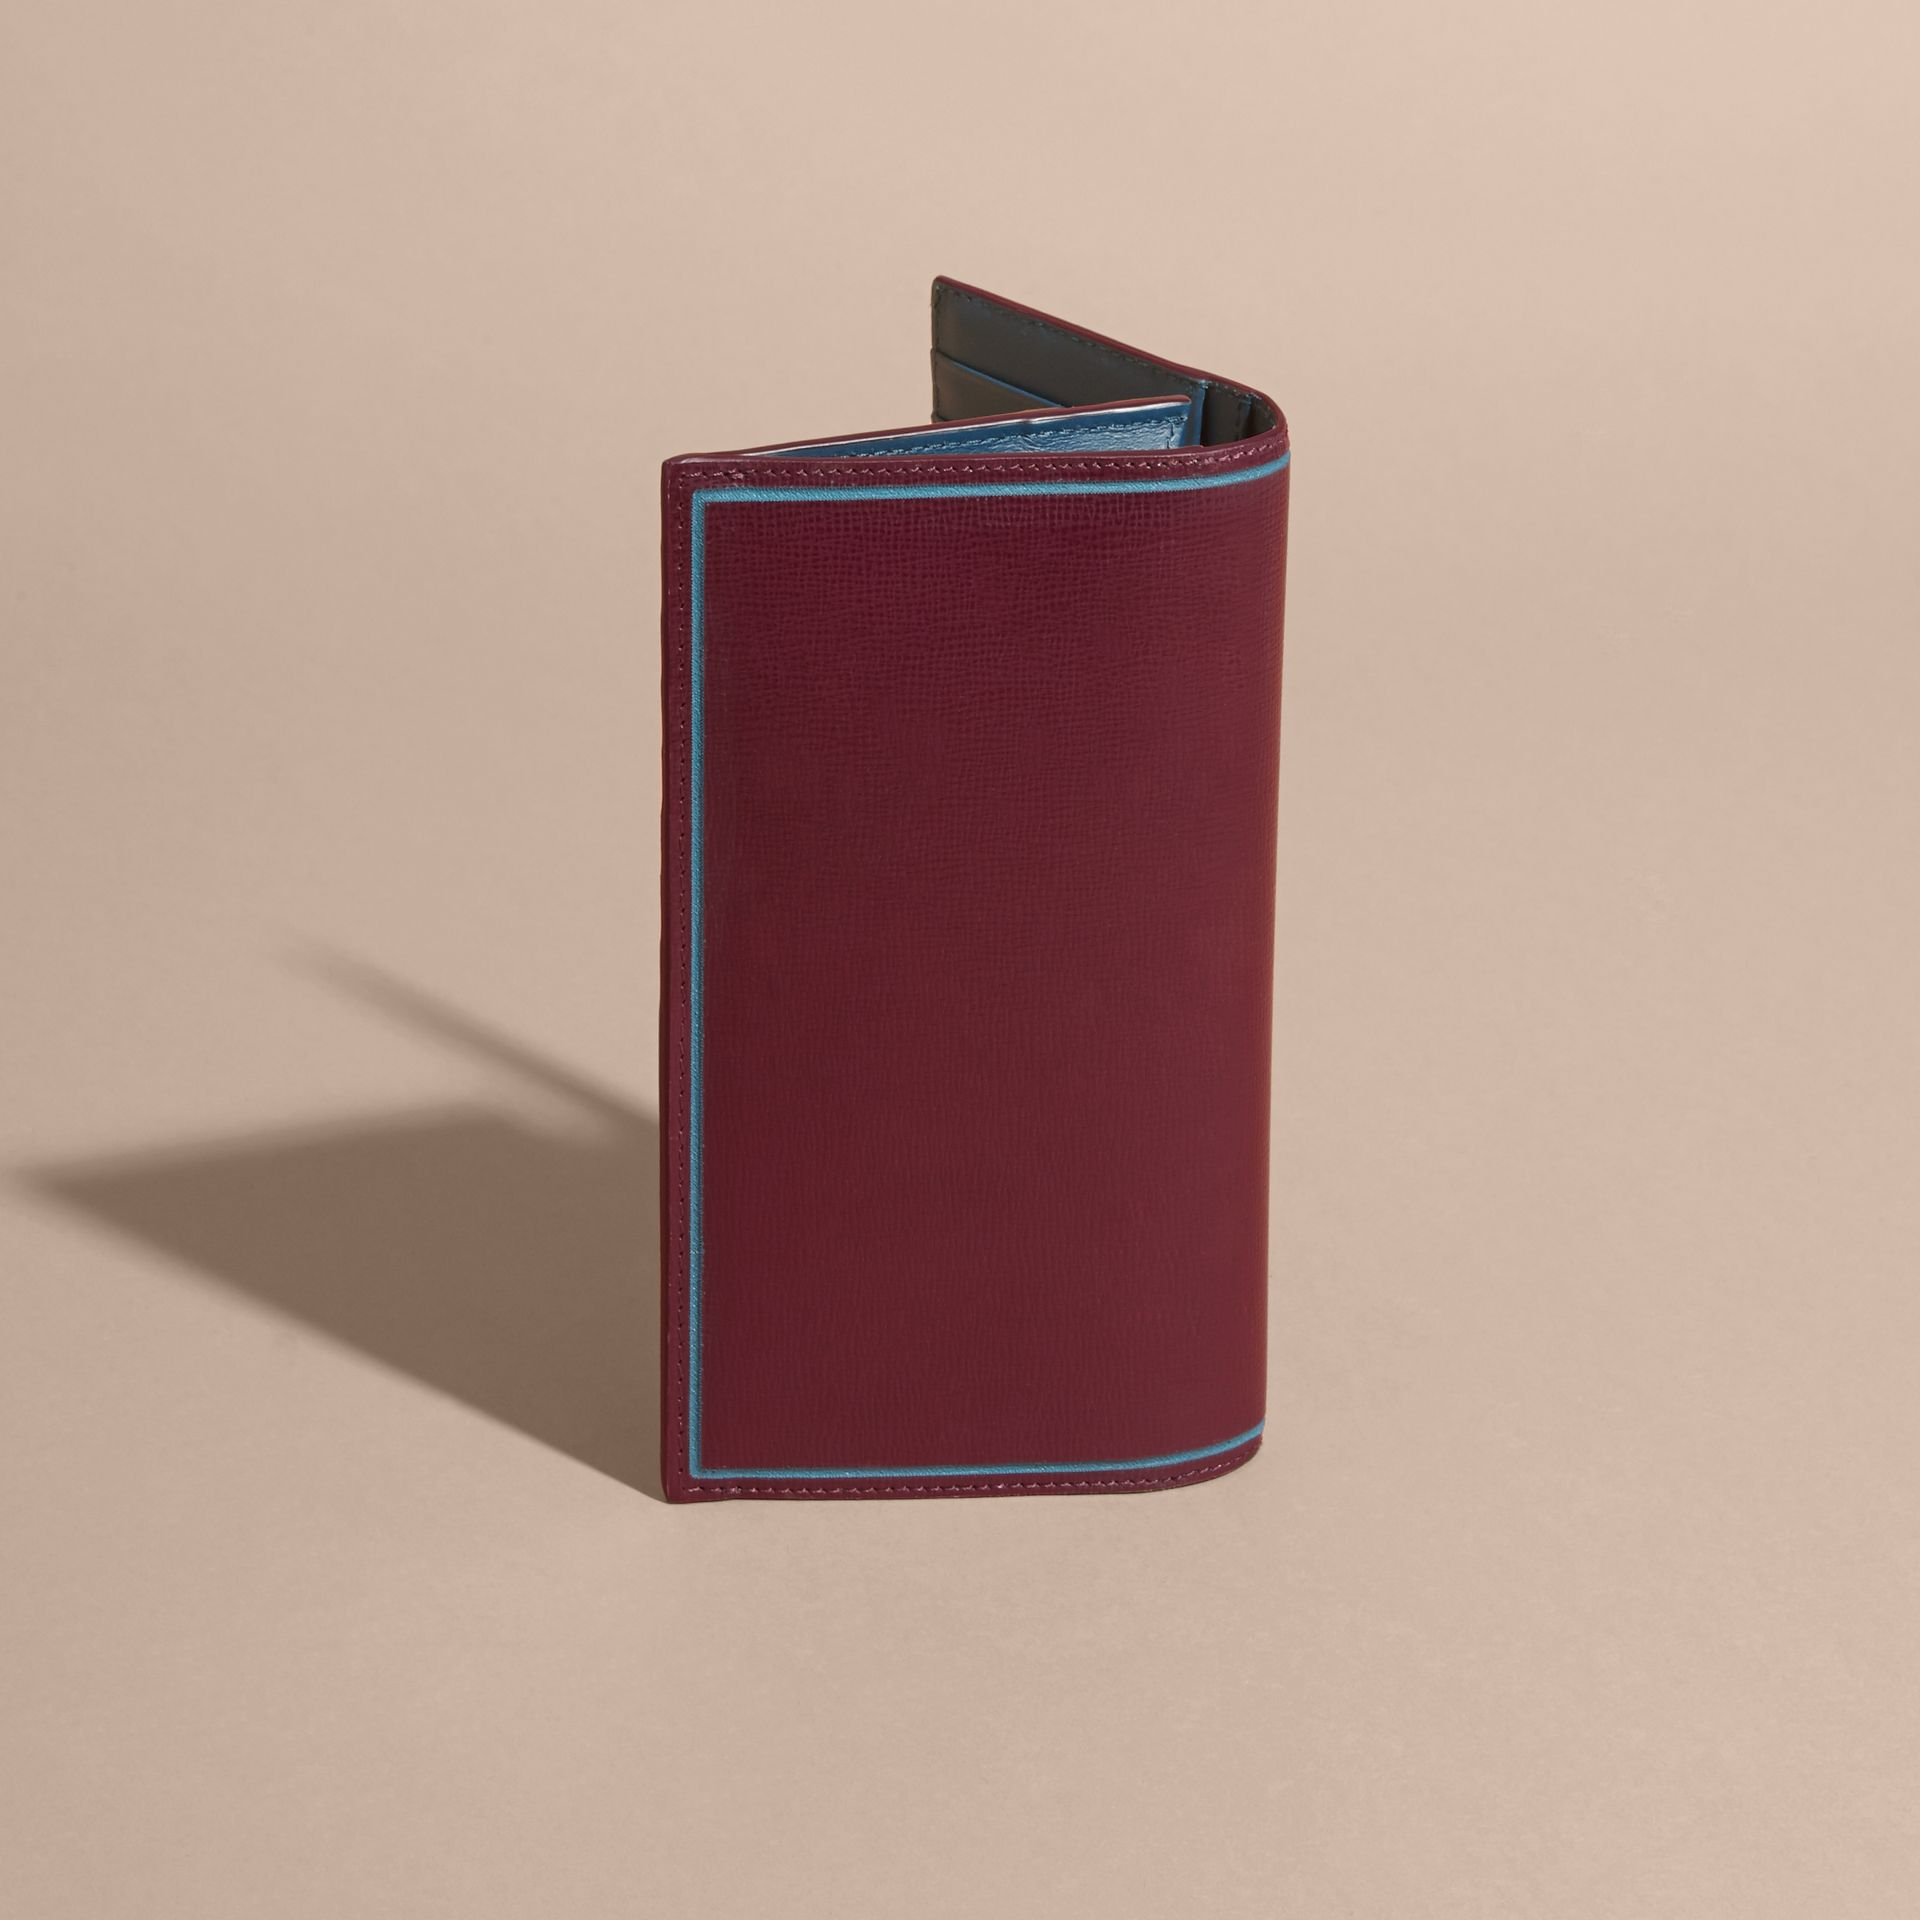 Border Detail London Leather Continental Wallet in Burgundy Red - gallery image 4